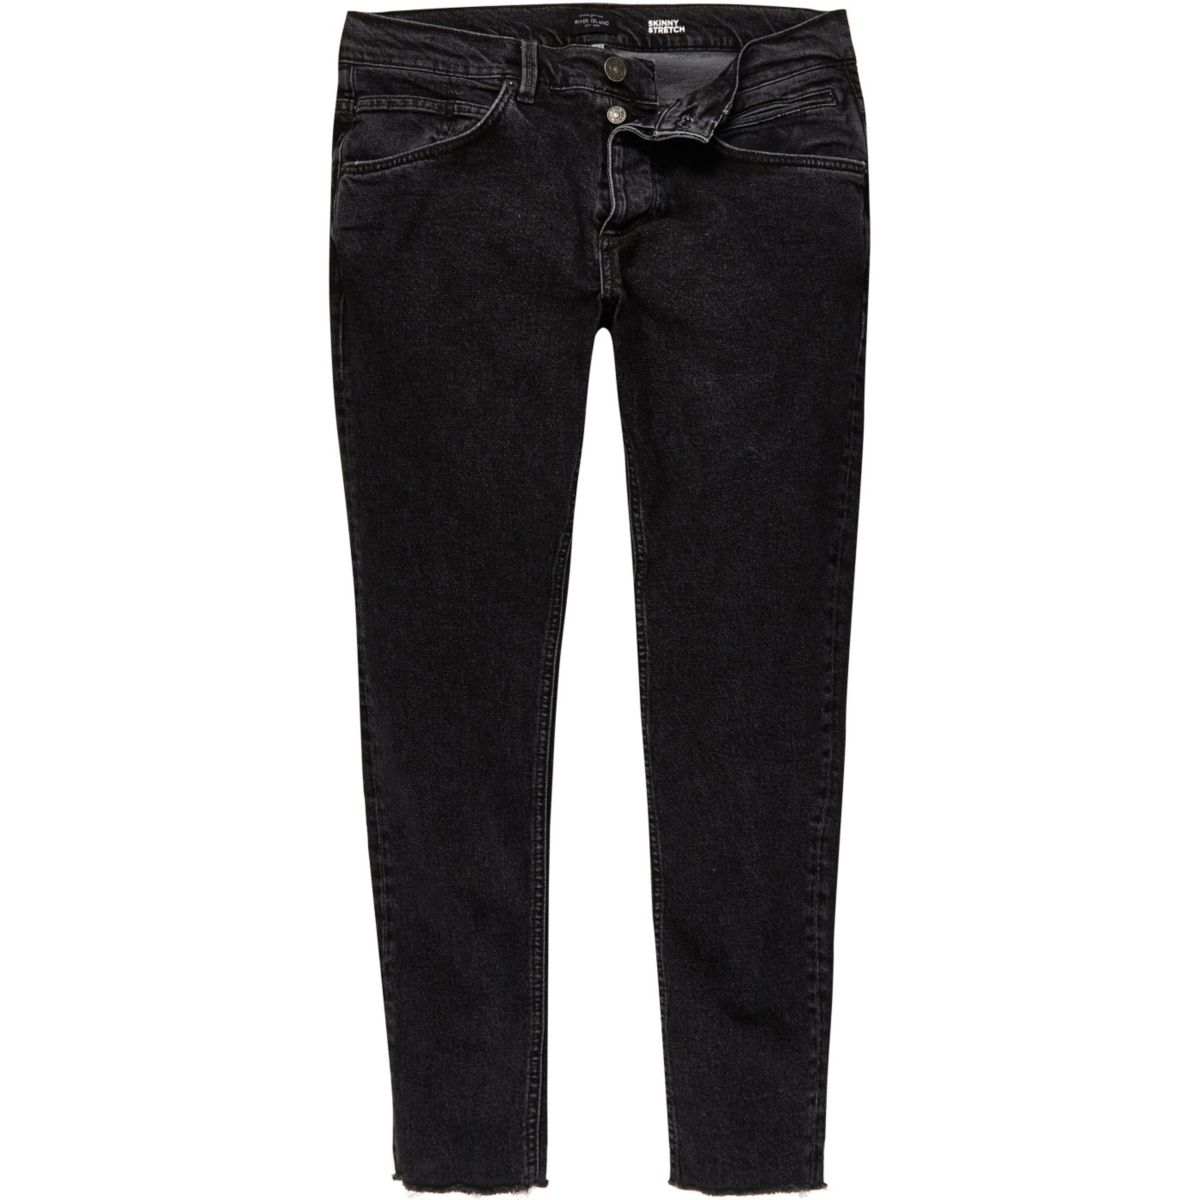 Buy the latest skinny jeans cheap shop fashion style with free shipping, and check out our daily updated new arrival skinny jeans at heresfilmz8.ga